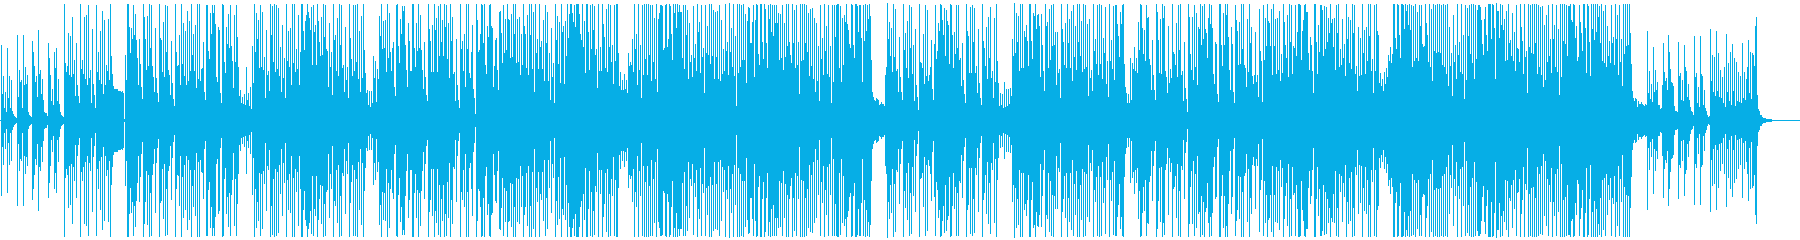 Cute & Kwaii typebeat Anime EDM / corporate VP and more's reproduced waveform